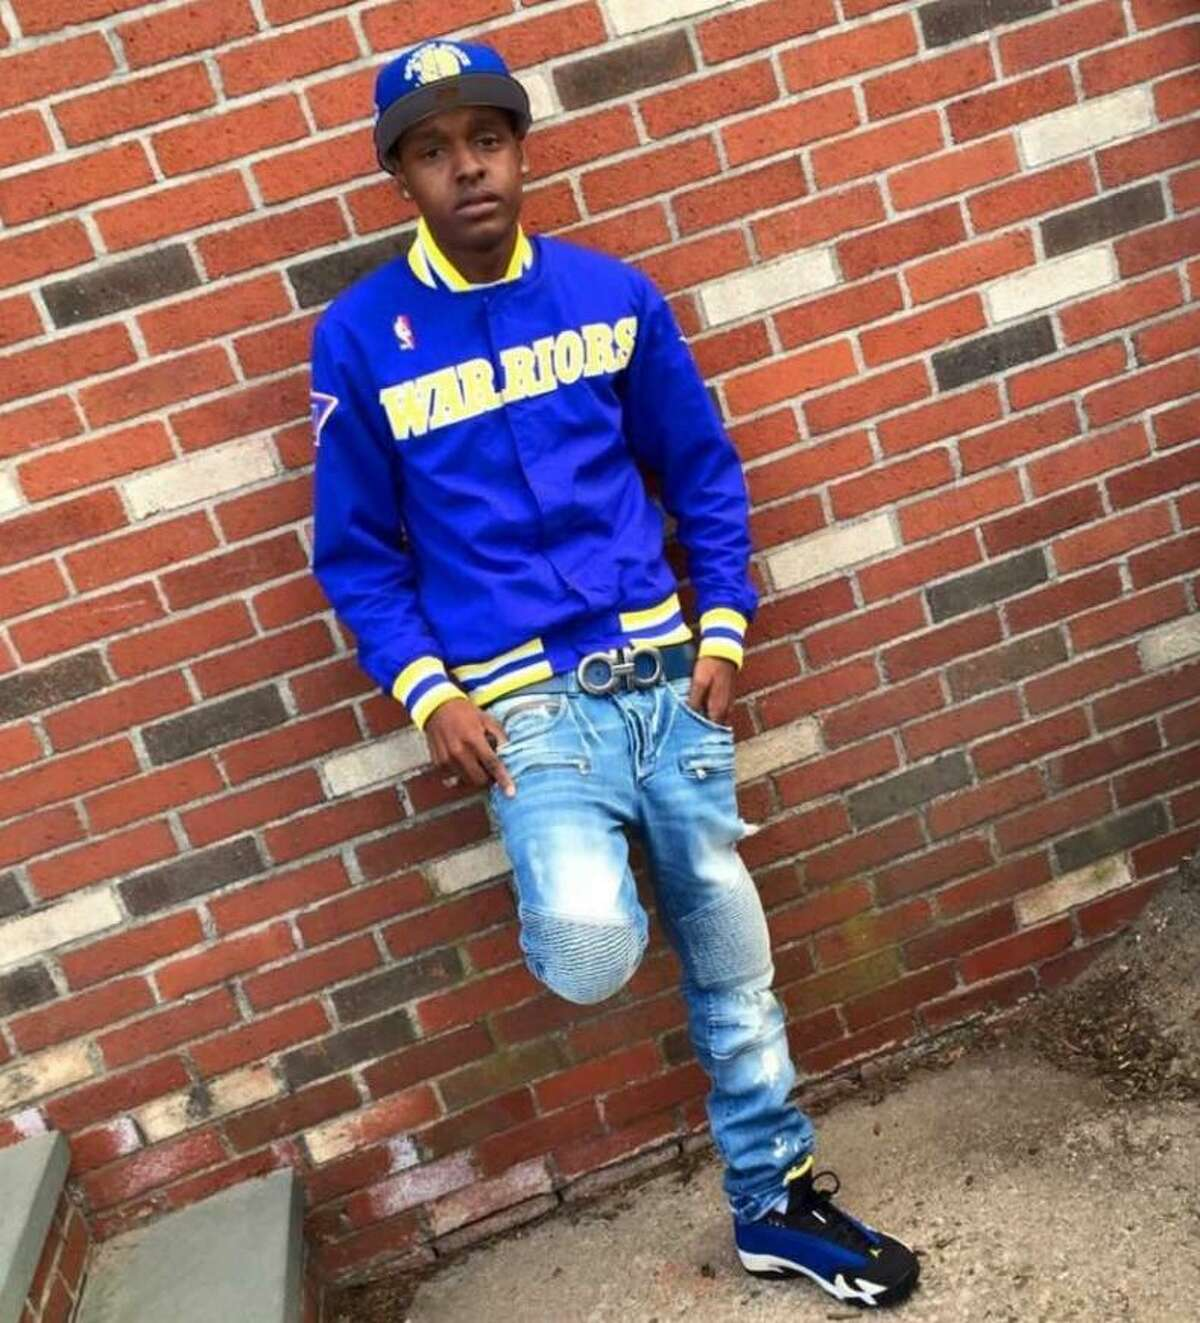 Kyree Kennedy, 22, was found dead by police when they responded to the scene of a shooting on Read Street in Bridgeport, Conn. on Tuesday, May 2, 2017.